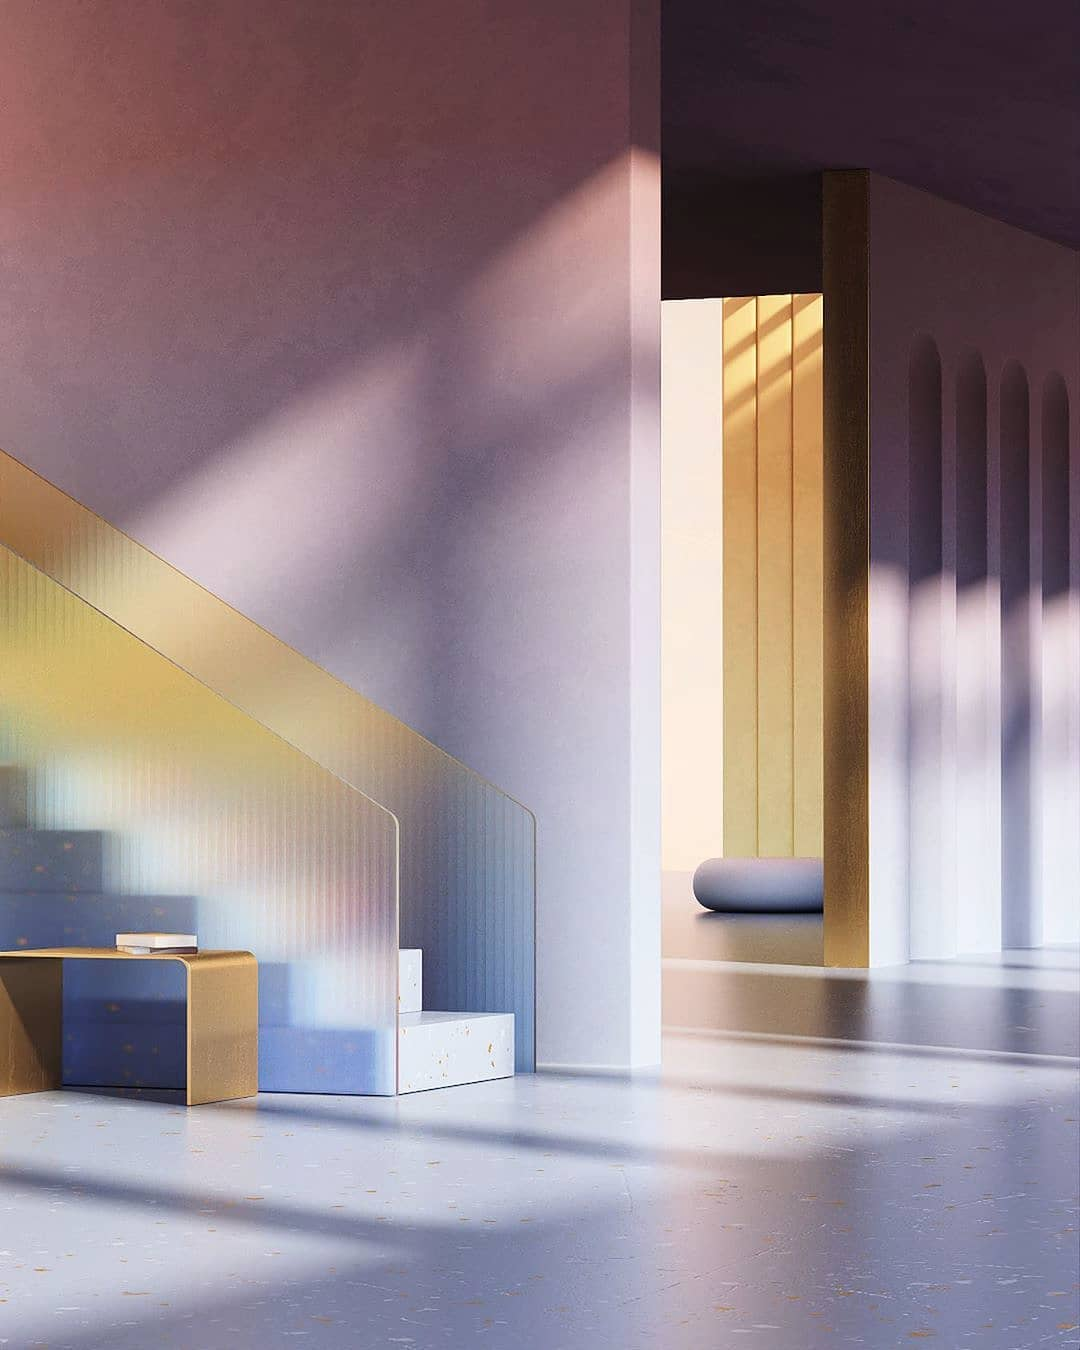 Minimal aesthetic interior room with stair design lit by soft window light